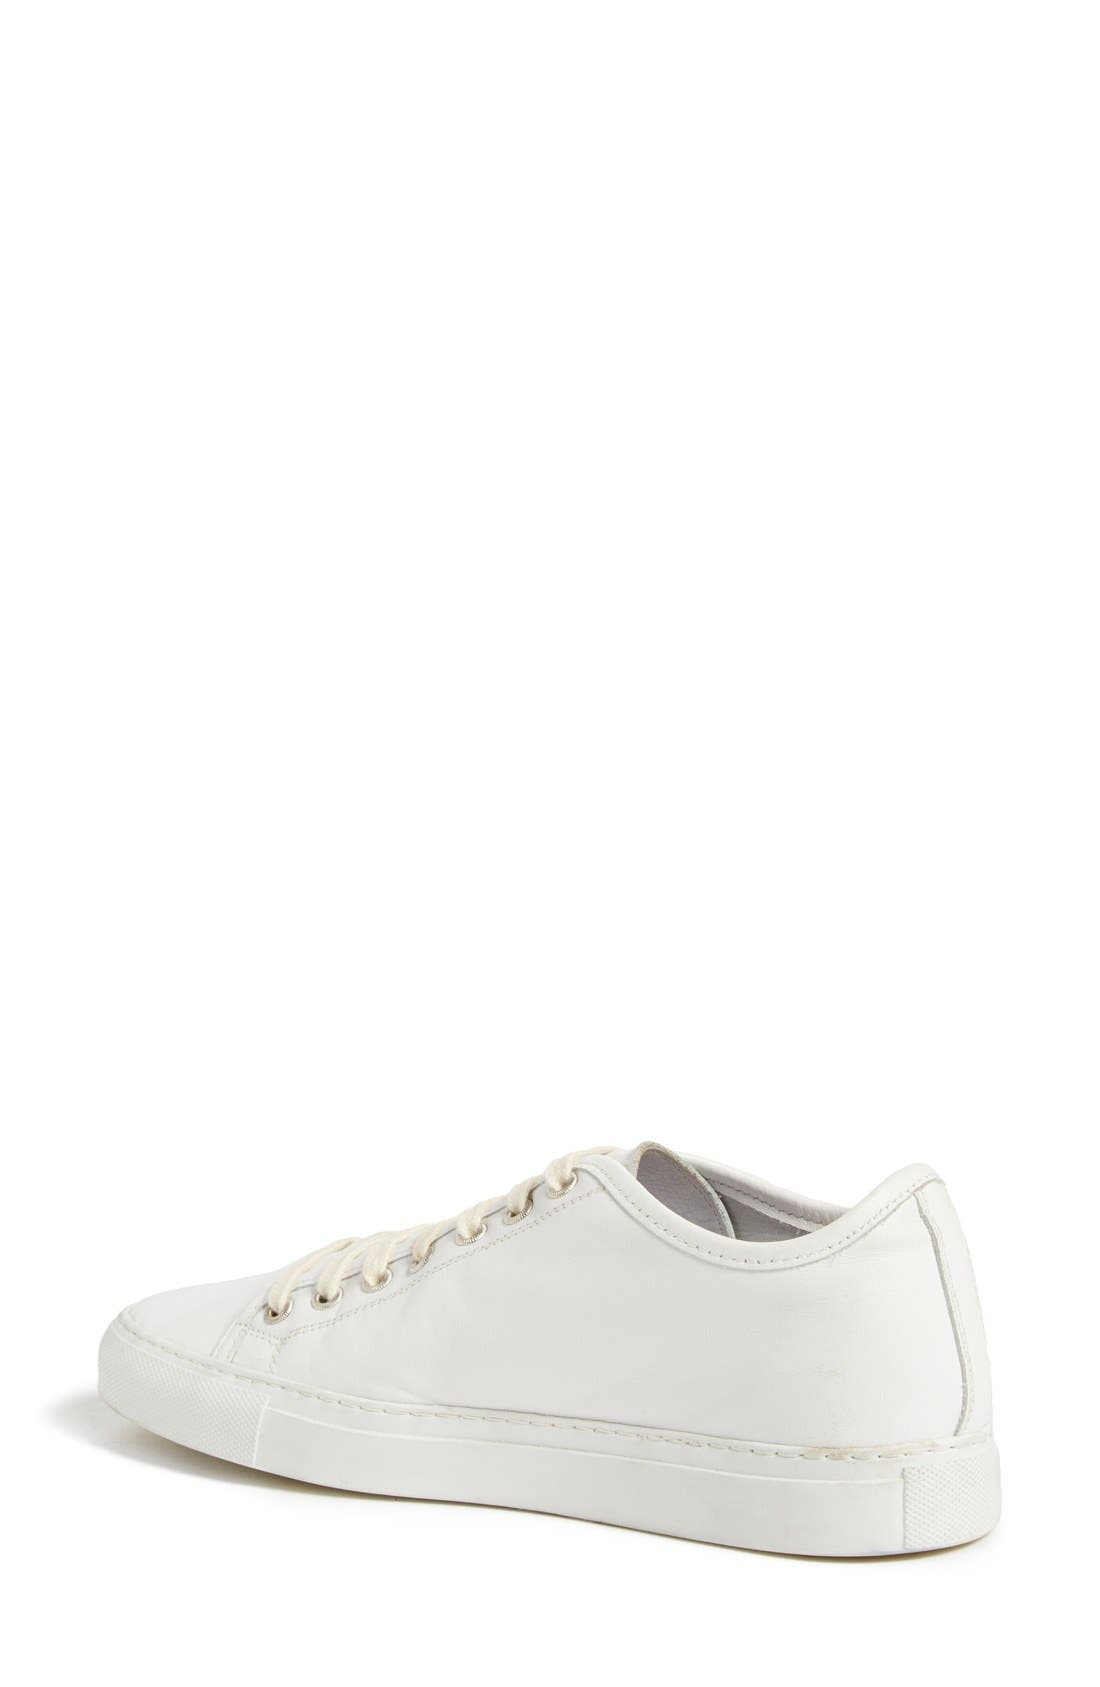 Alternate Image 2  - Sofie D'Hoore 'Frida' Sneaker (Women)